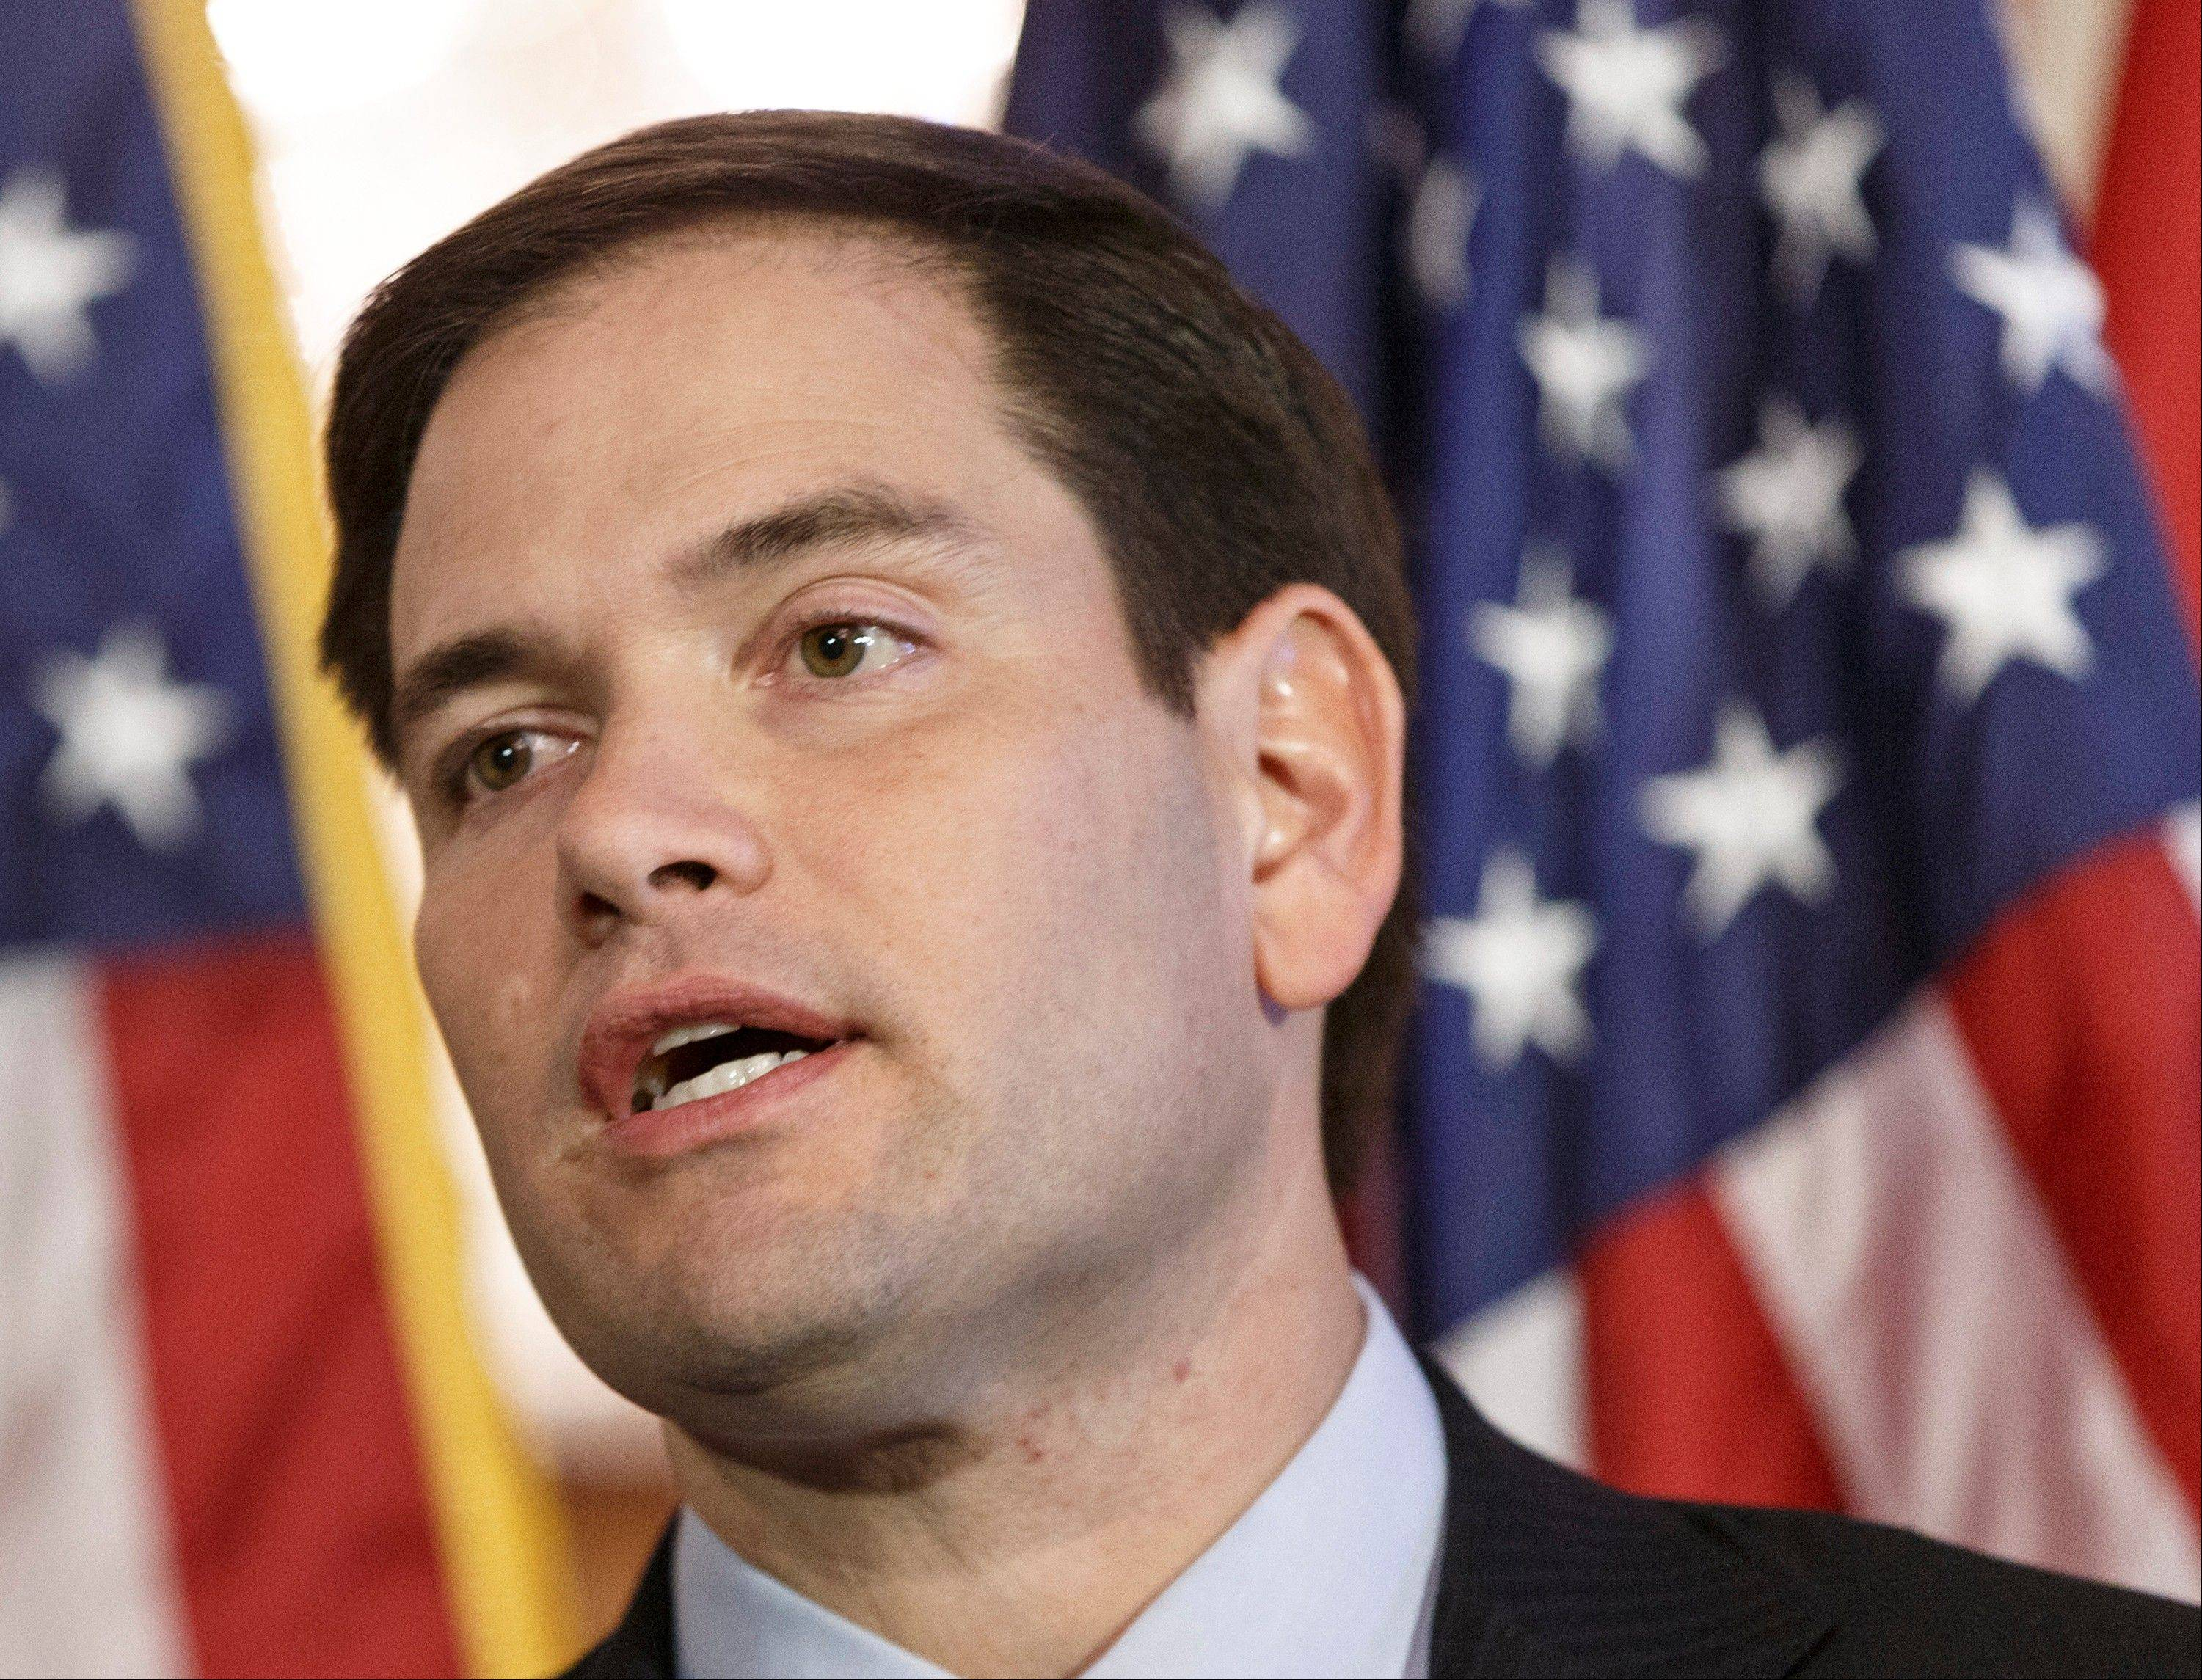 A look at potential presidential candidate Marco Rubio